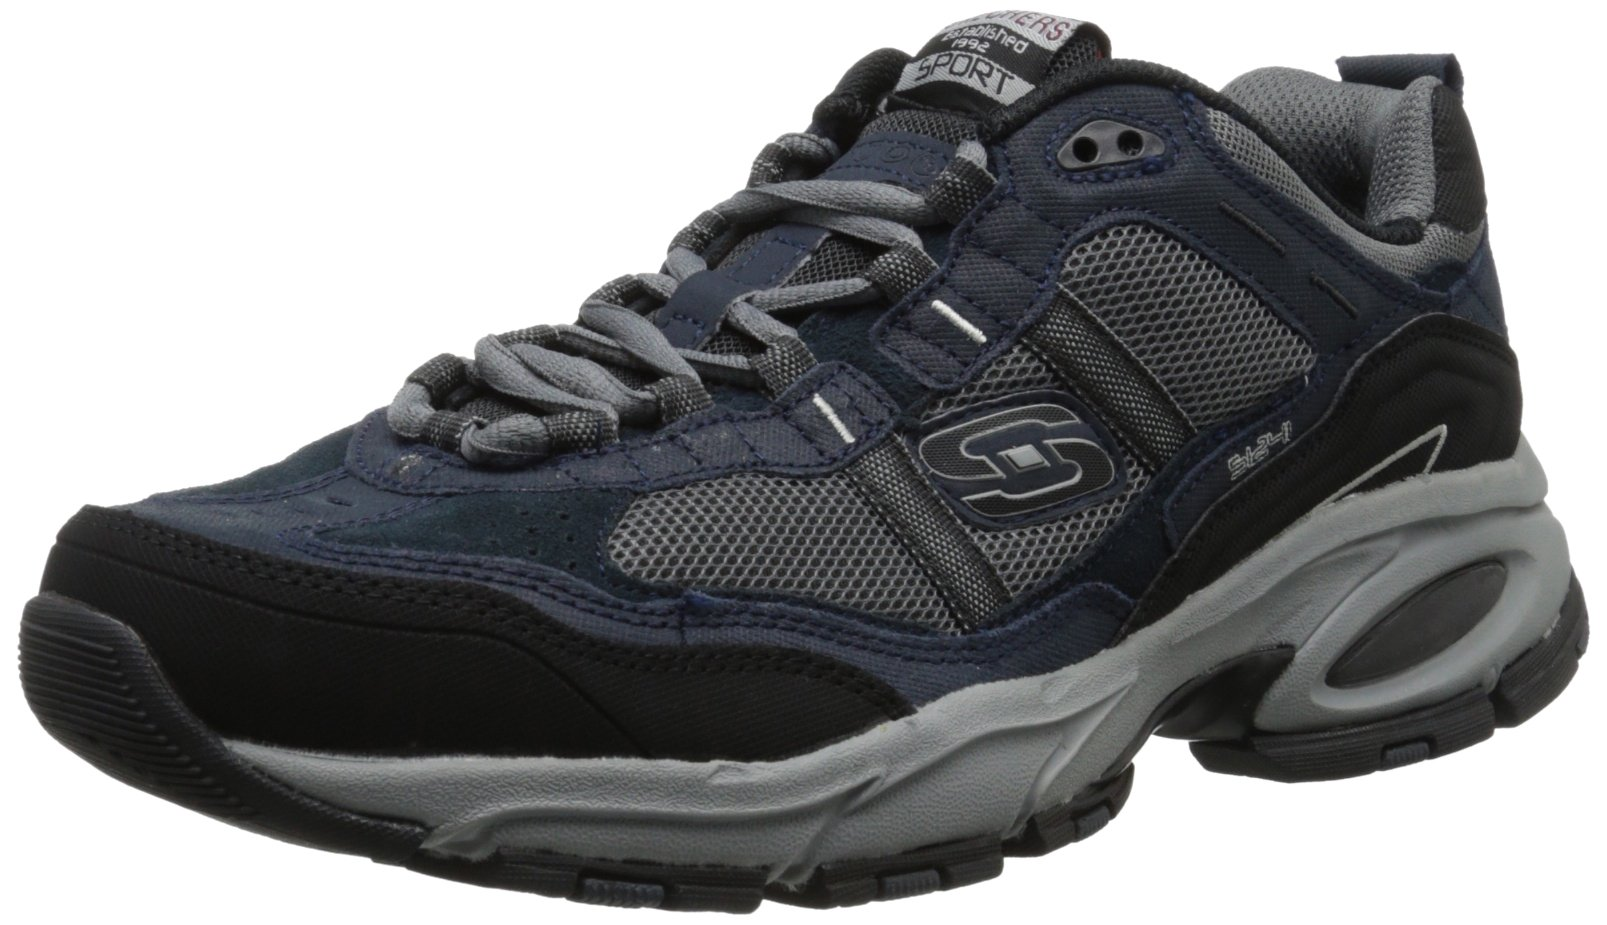 Skechers Sport Men's Vigor 2.0 Trait Memory Foam Sneaker, Navy/Grey, 16 XW US by Skechers